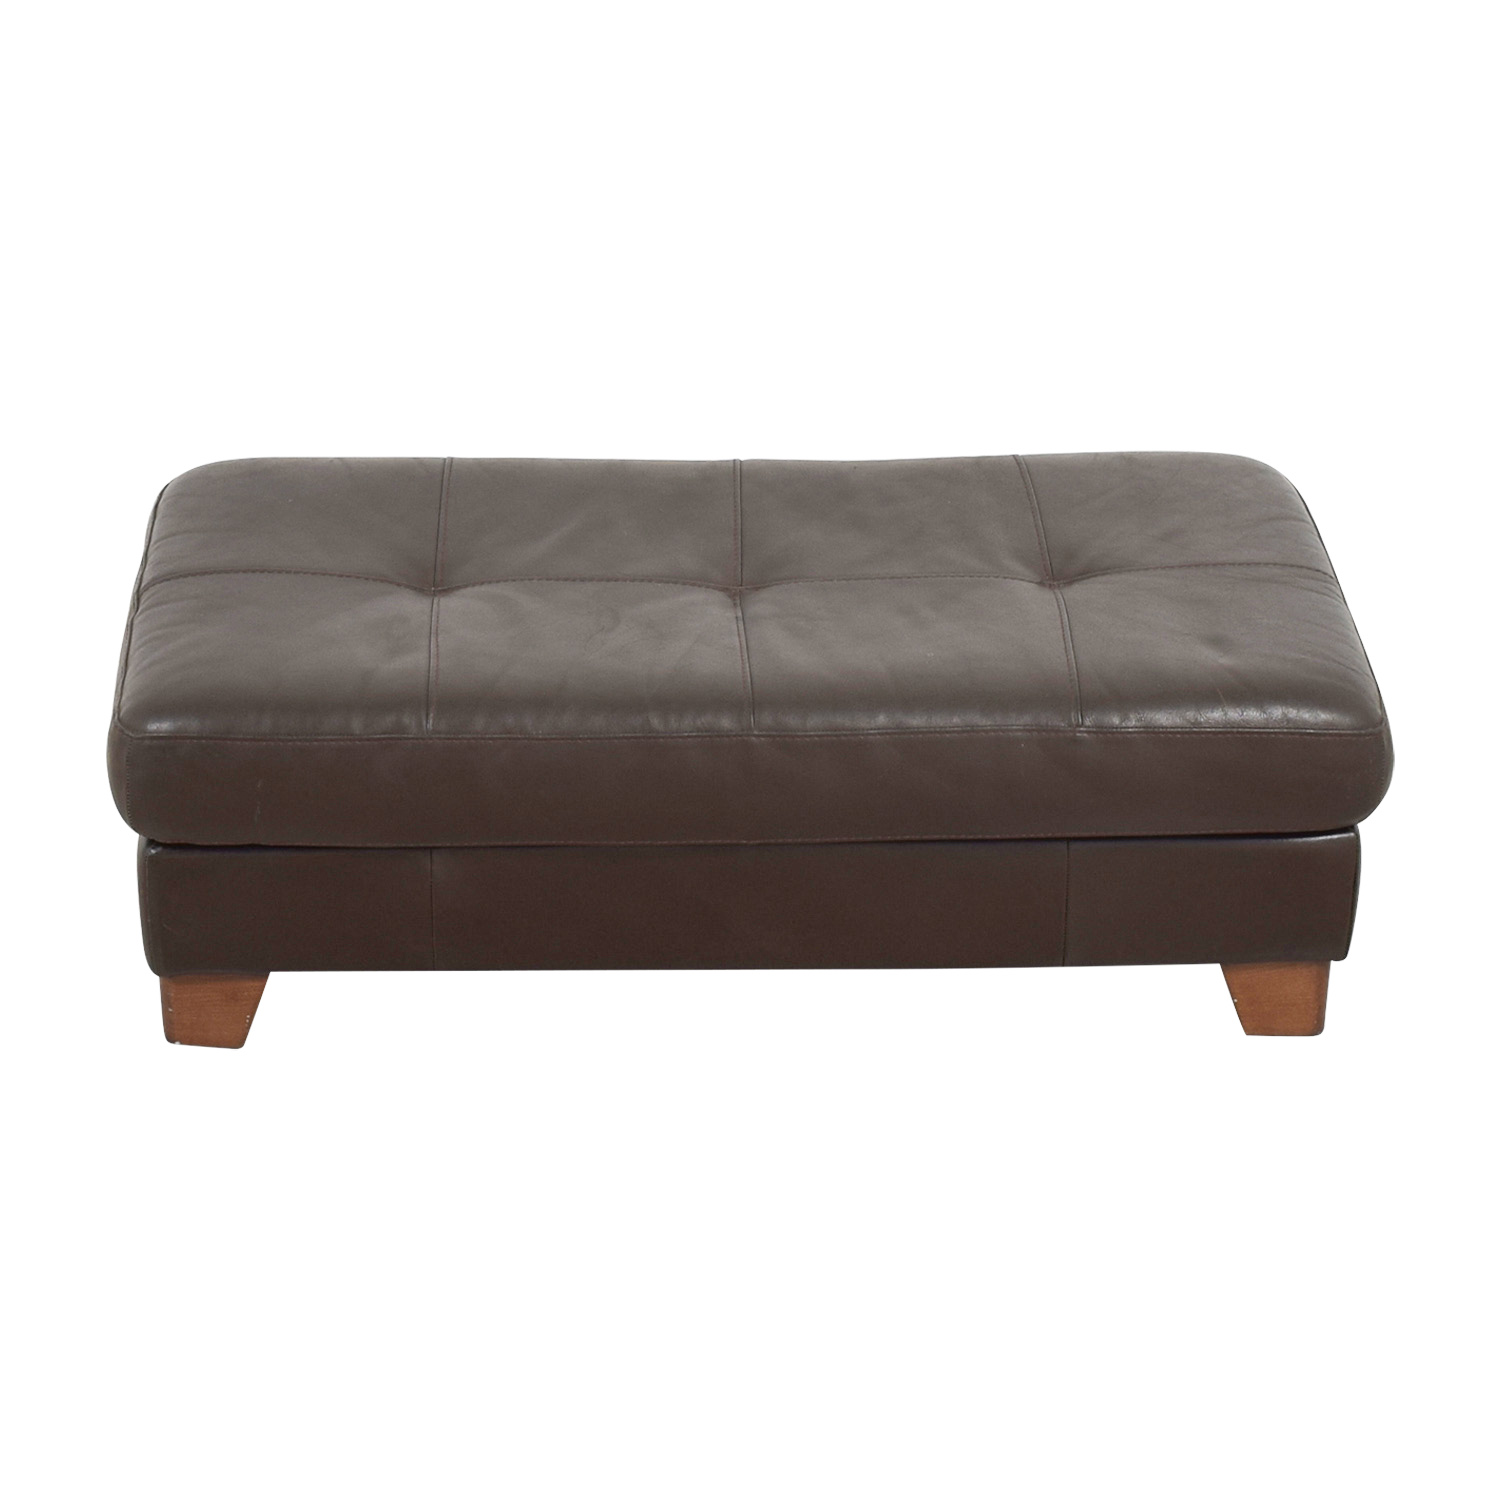 Bloomingdale's Bloomingdale's Brown Leather Tufted Ottoman price